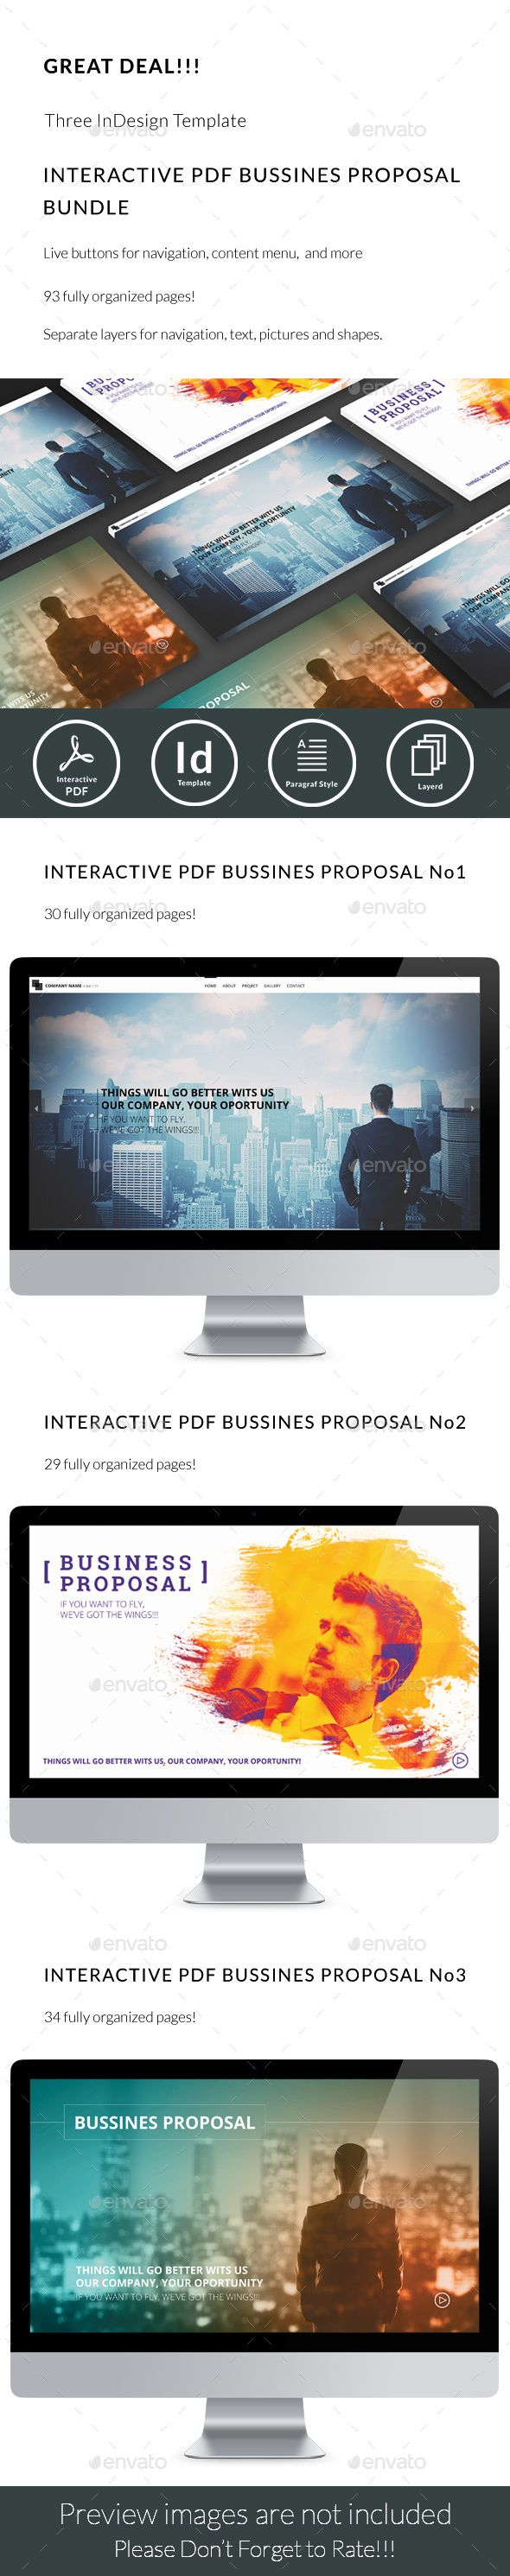 Interactive Pdf Business Proposal Bundle  Business Proposal